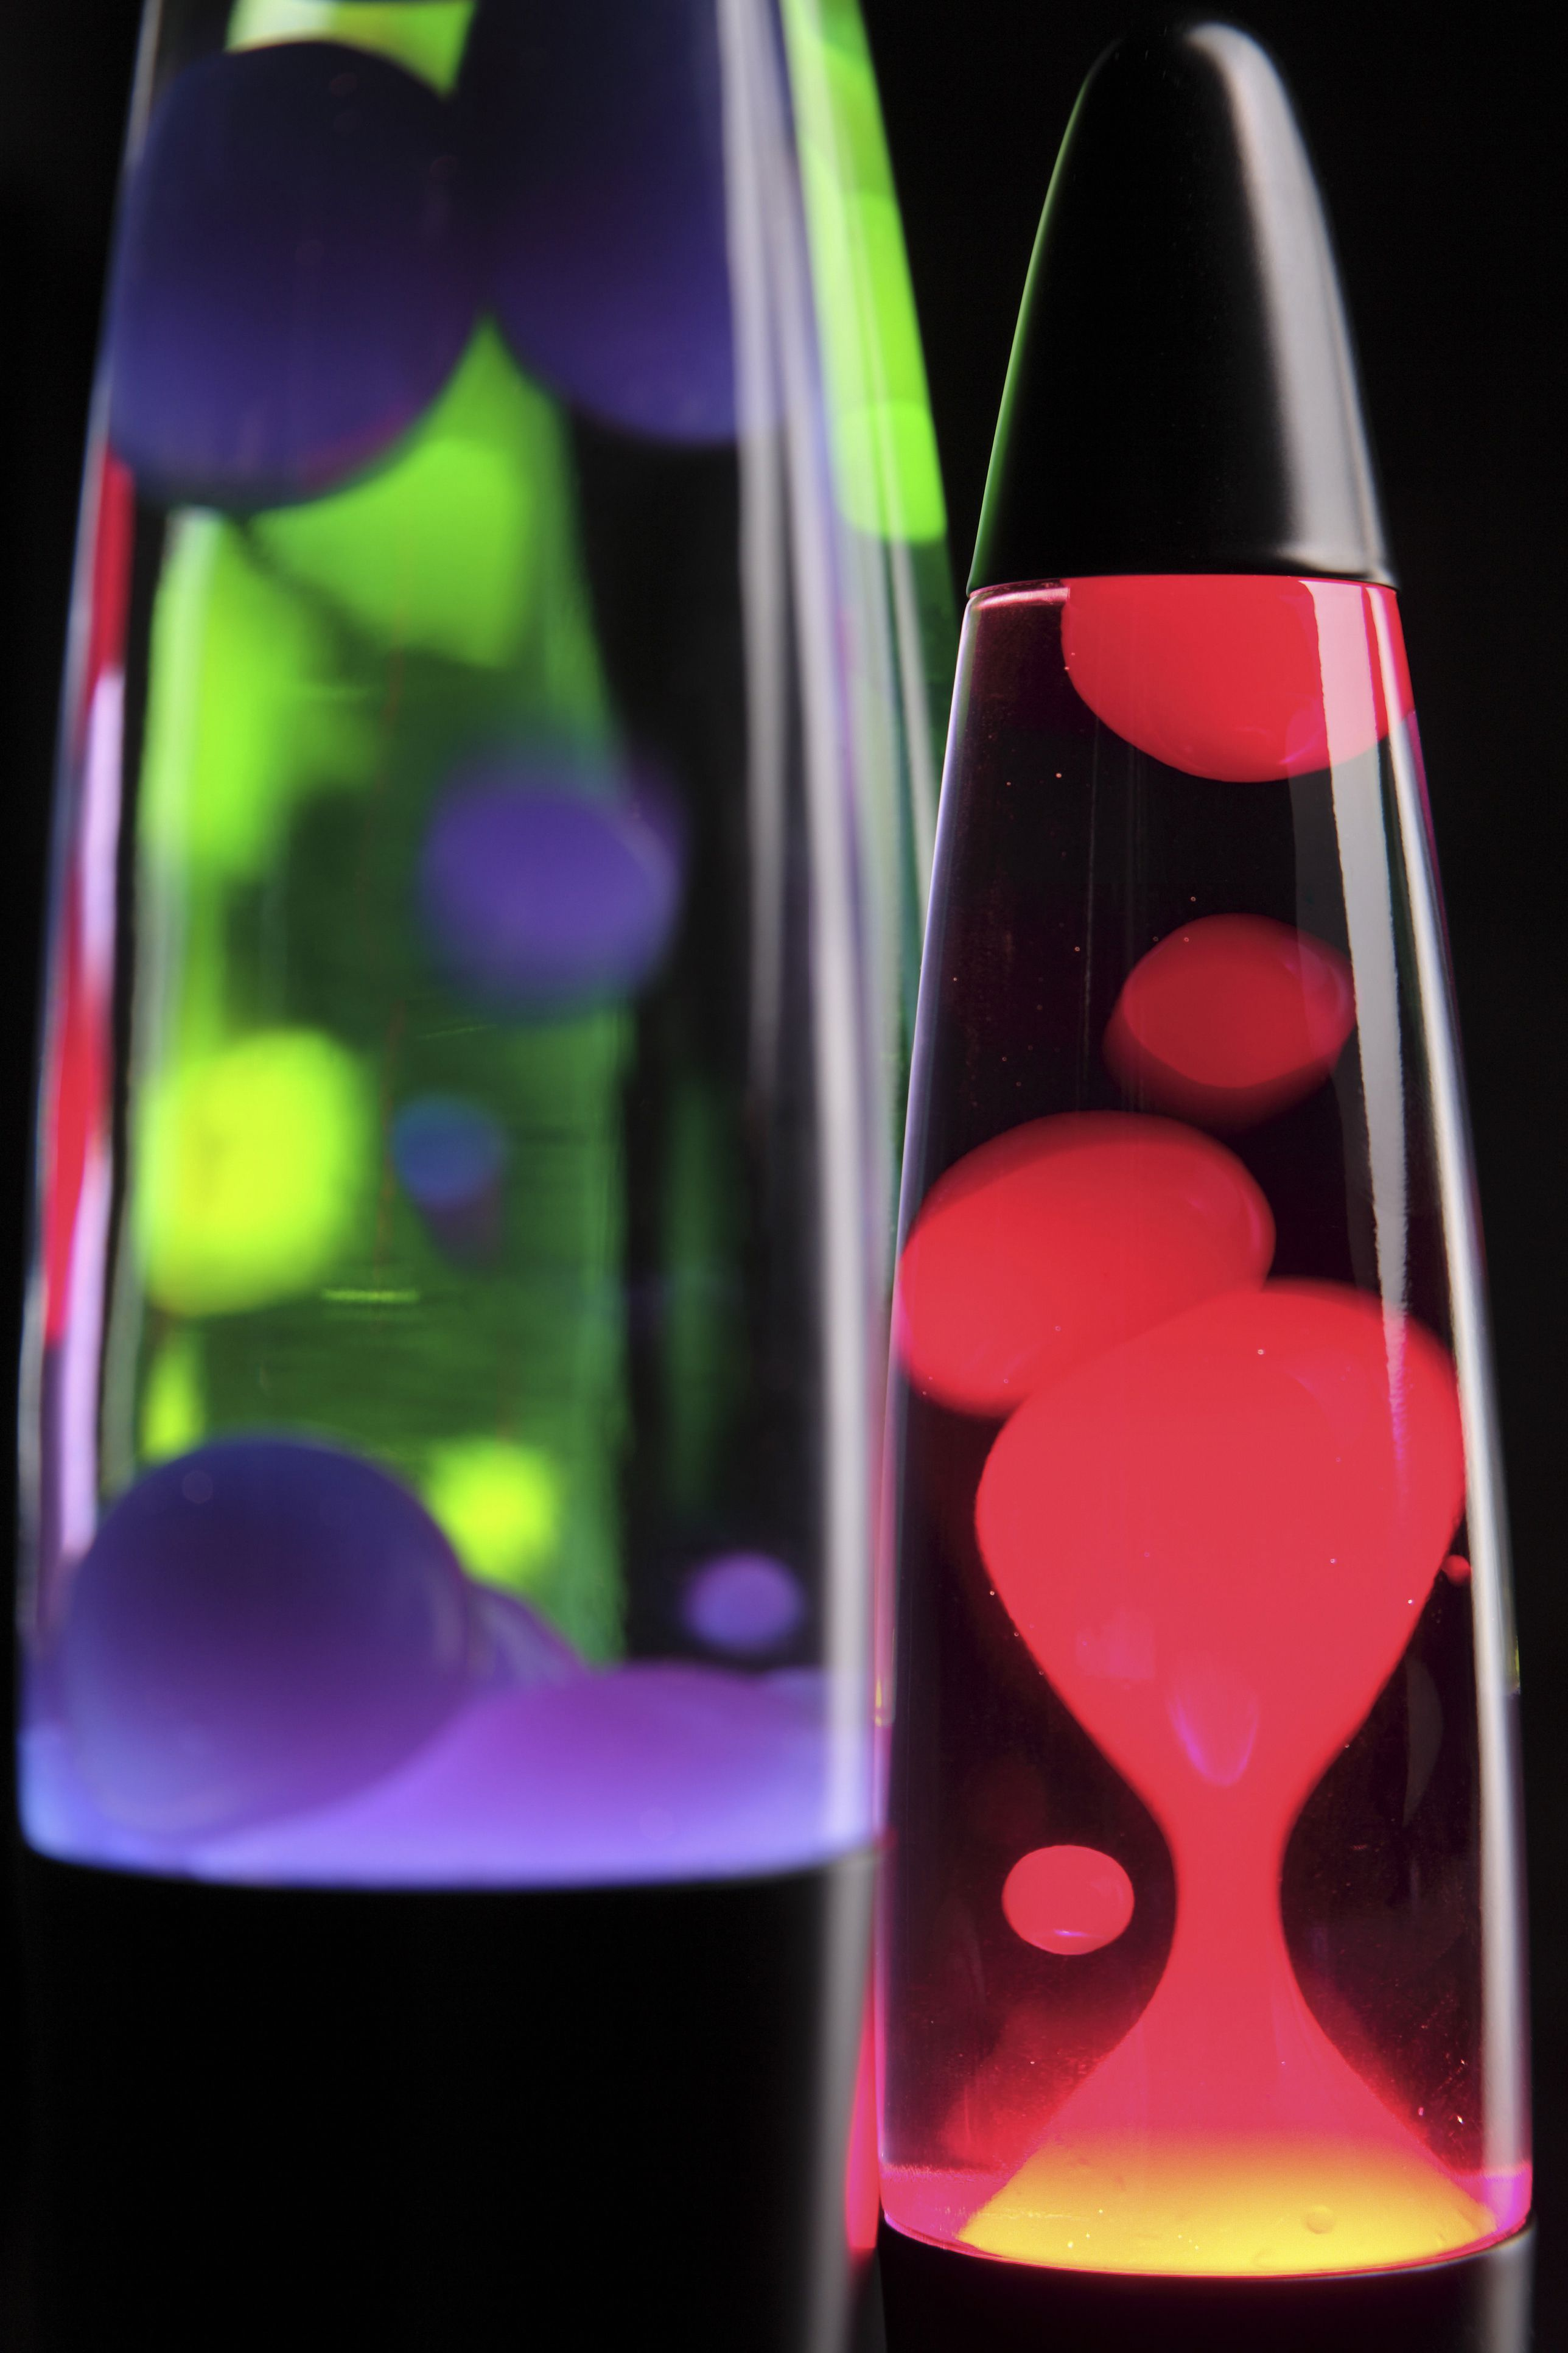 How To Make a Safe Glowing Lava Lamp